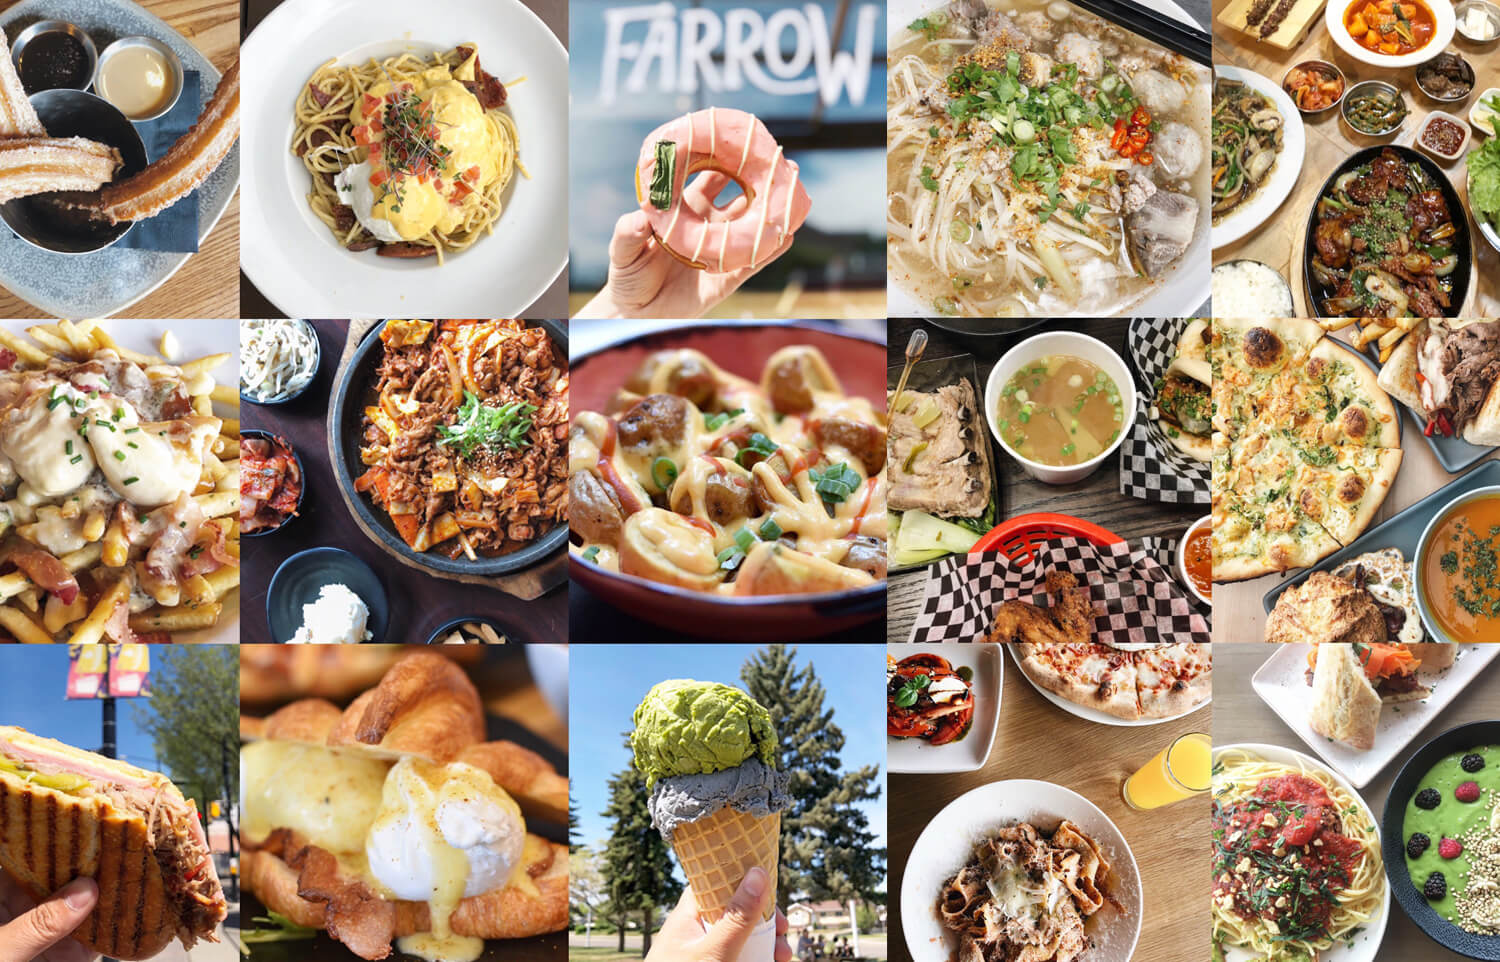 Explore Edmonton Year In Review Eats Dining Out Restaurants Food